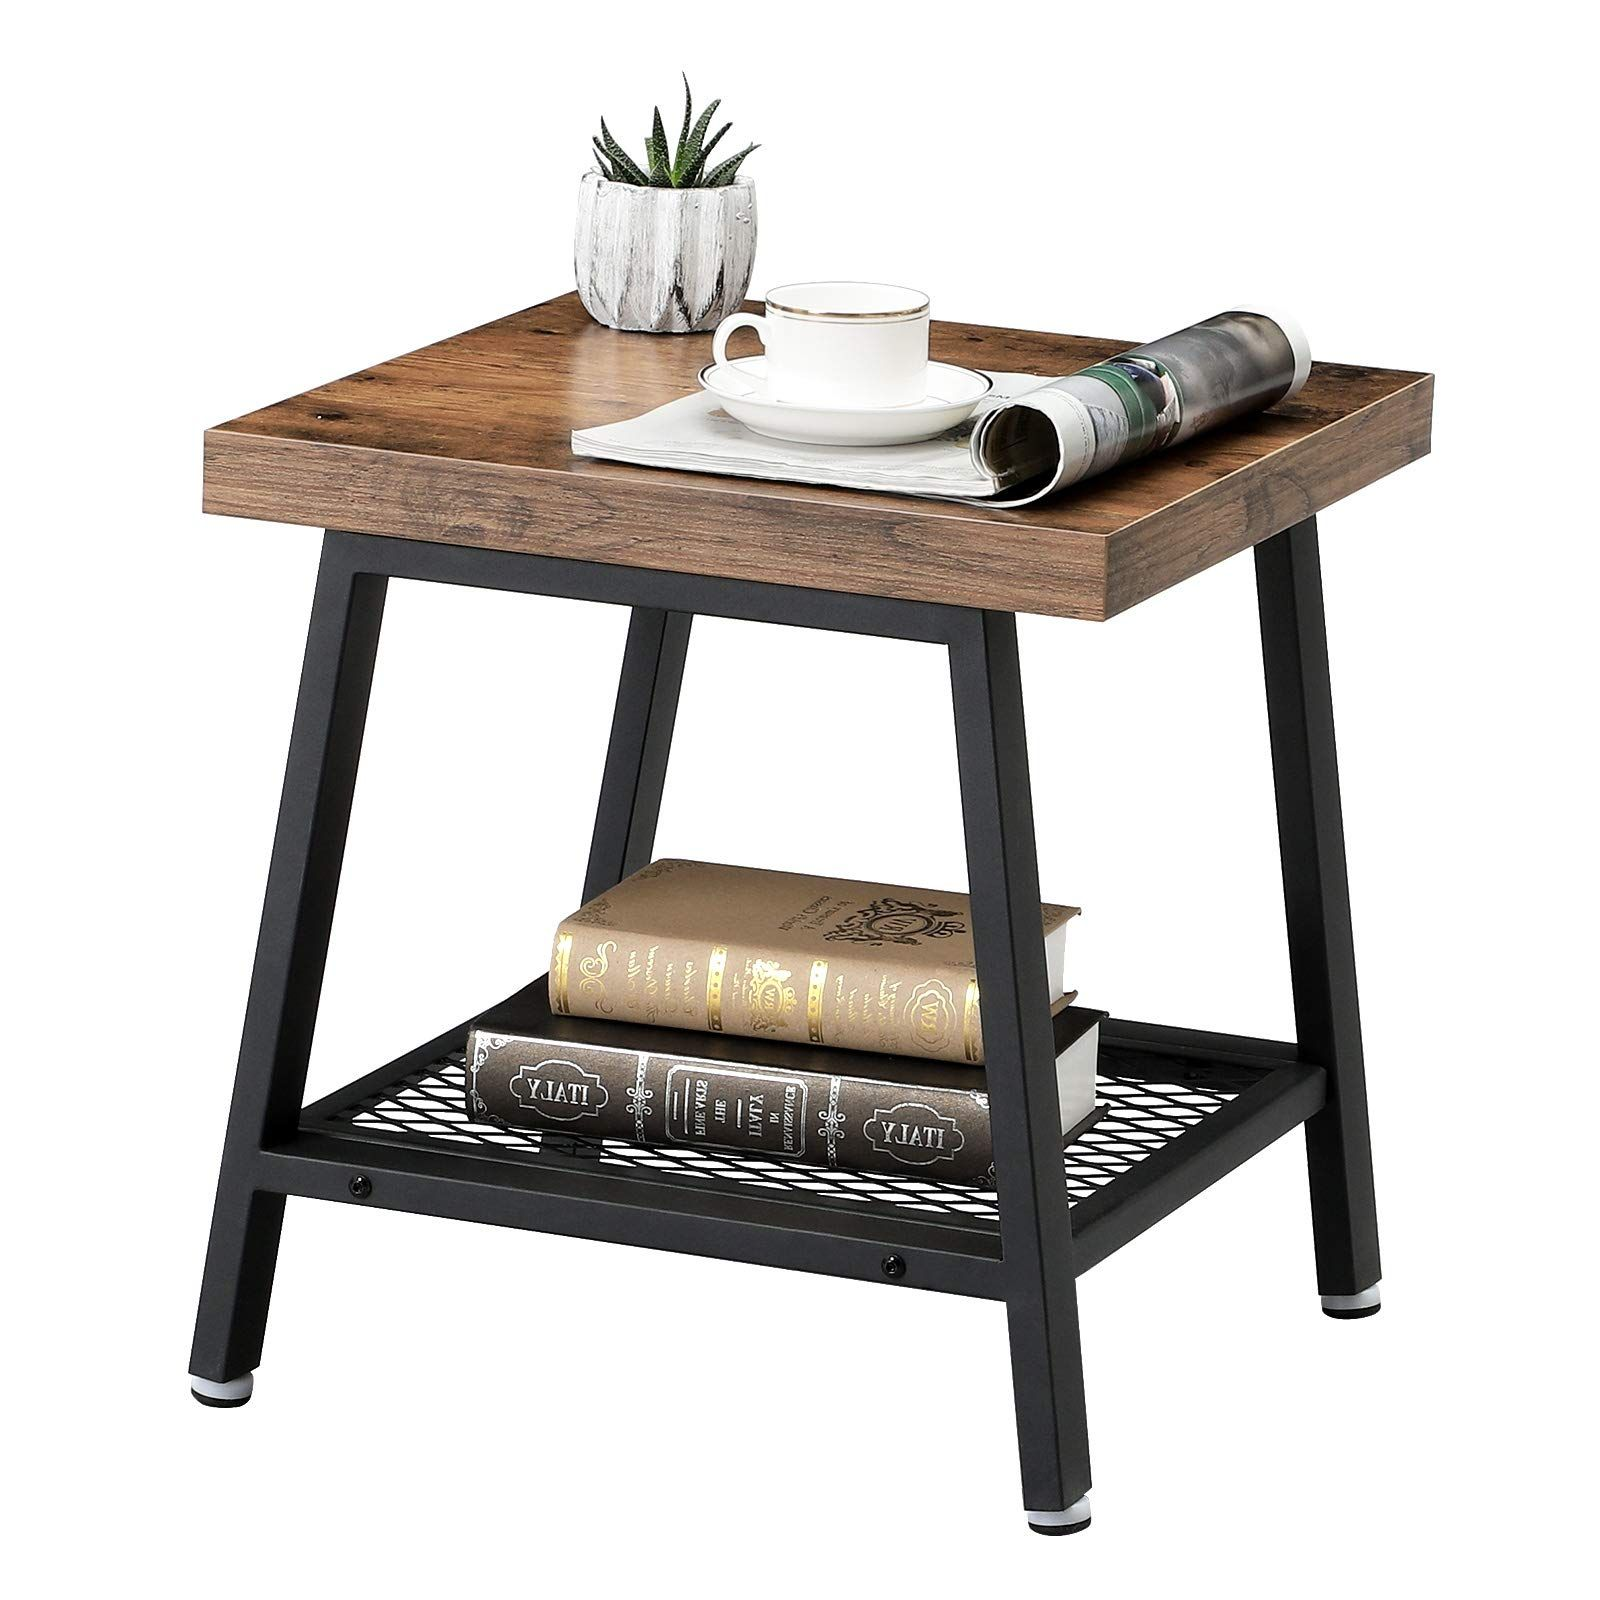 Vasagle 2tier End Table Industrial Nightstand Coffee Table With Storage Shelf Wood Look Accent Furniture With Metal Frame Ulet42x To V Table Side Table With Storage Coffee Table With Storage